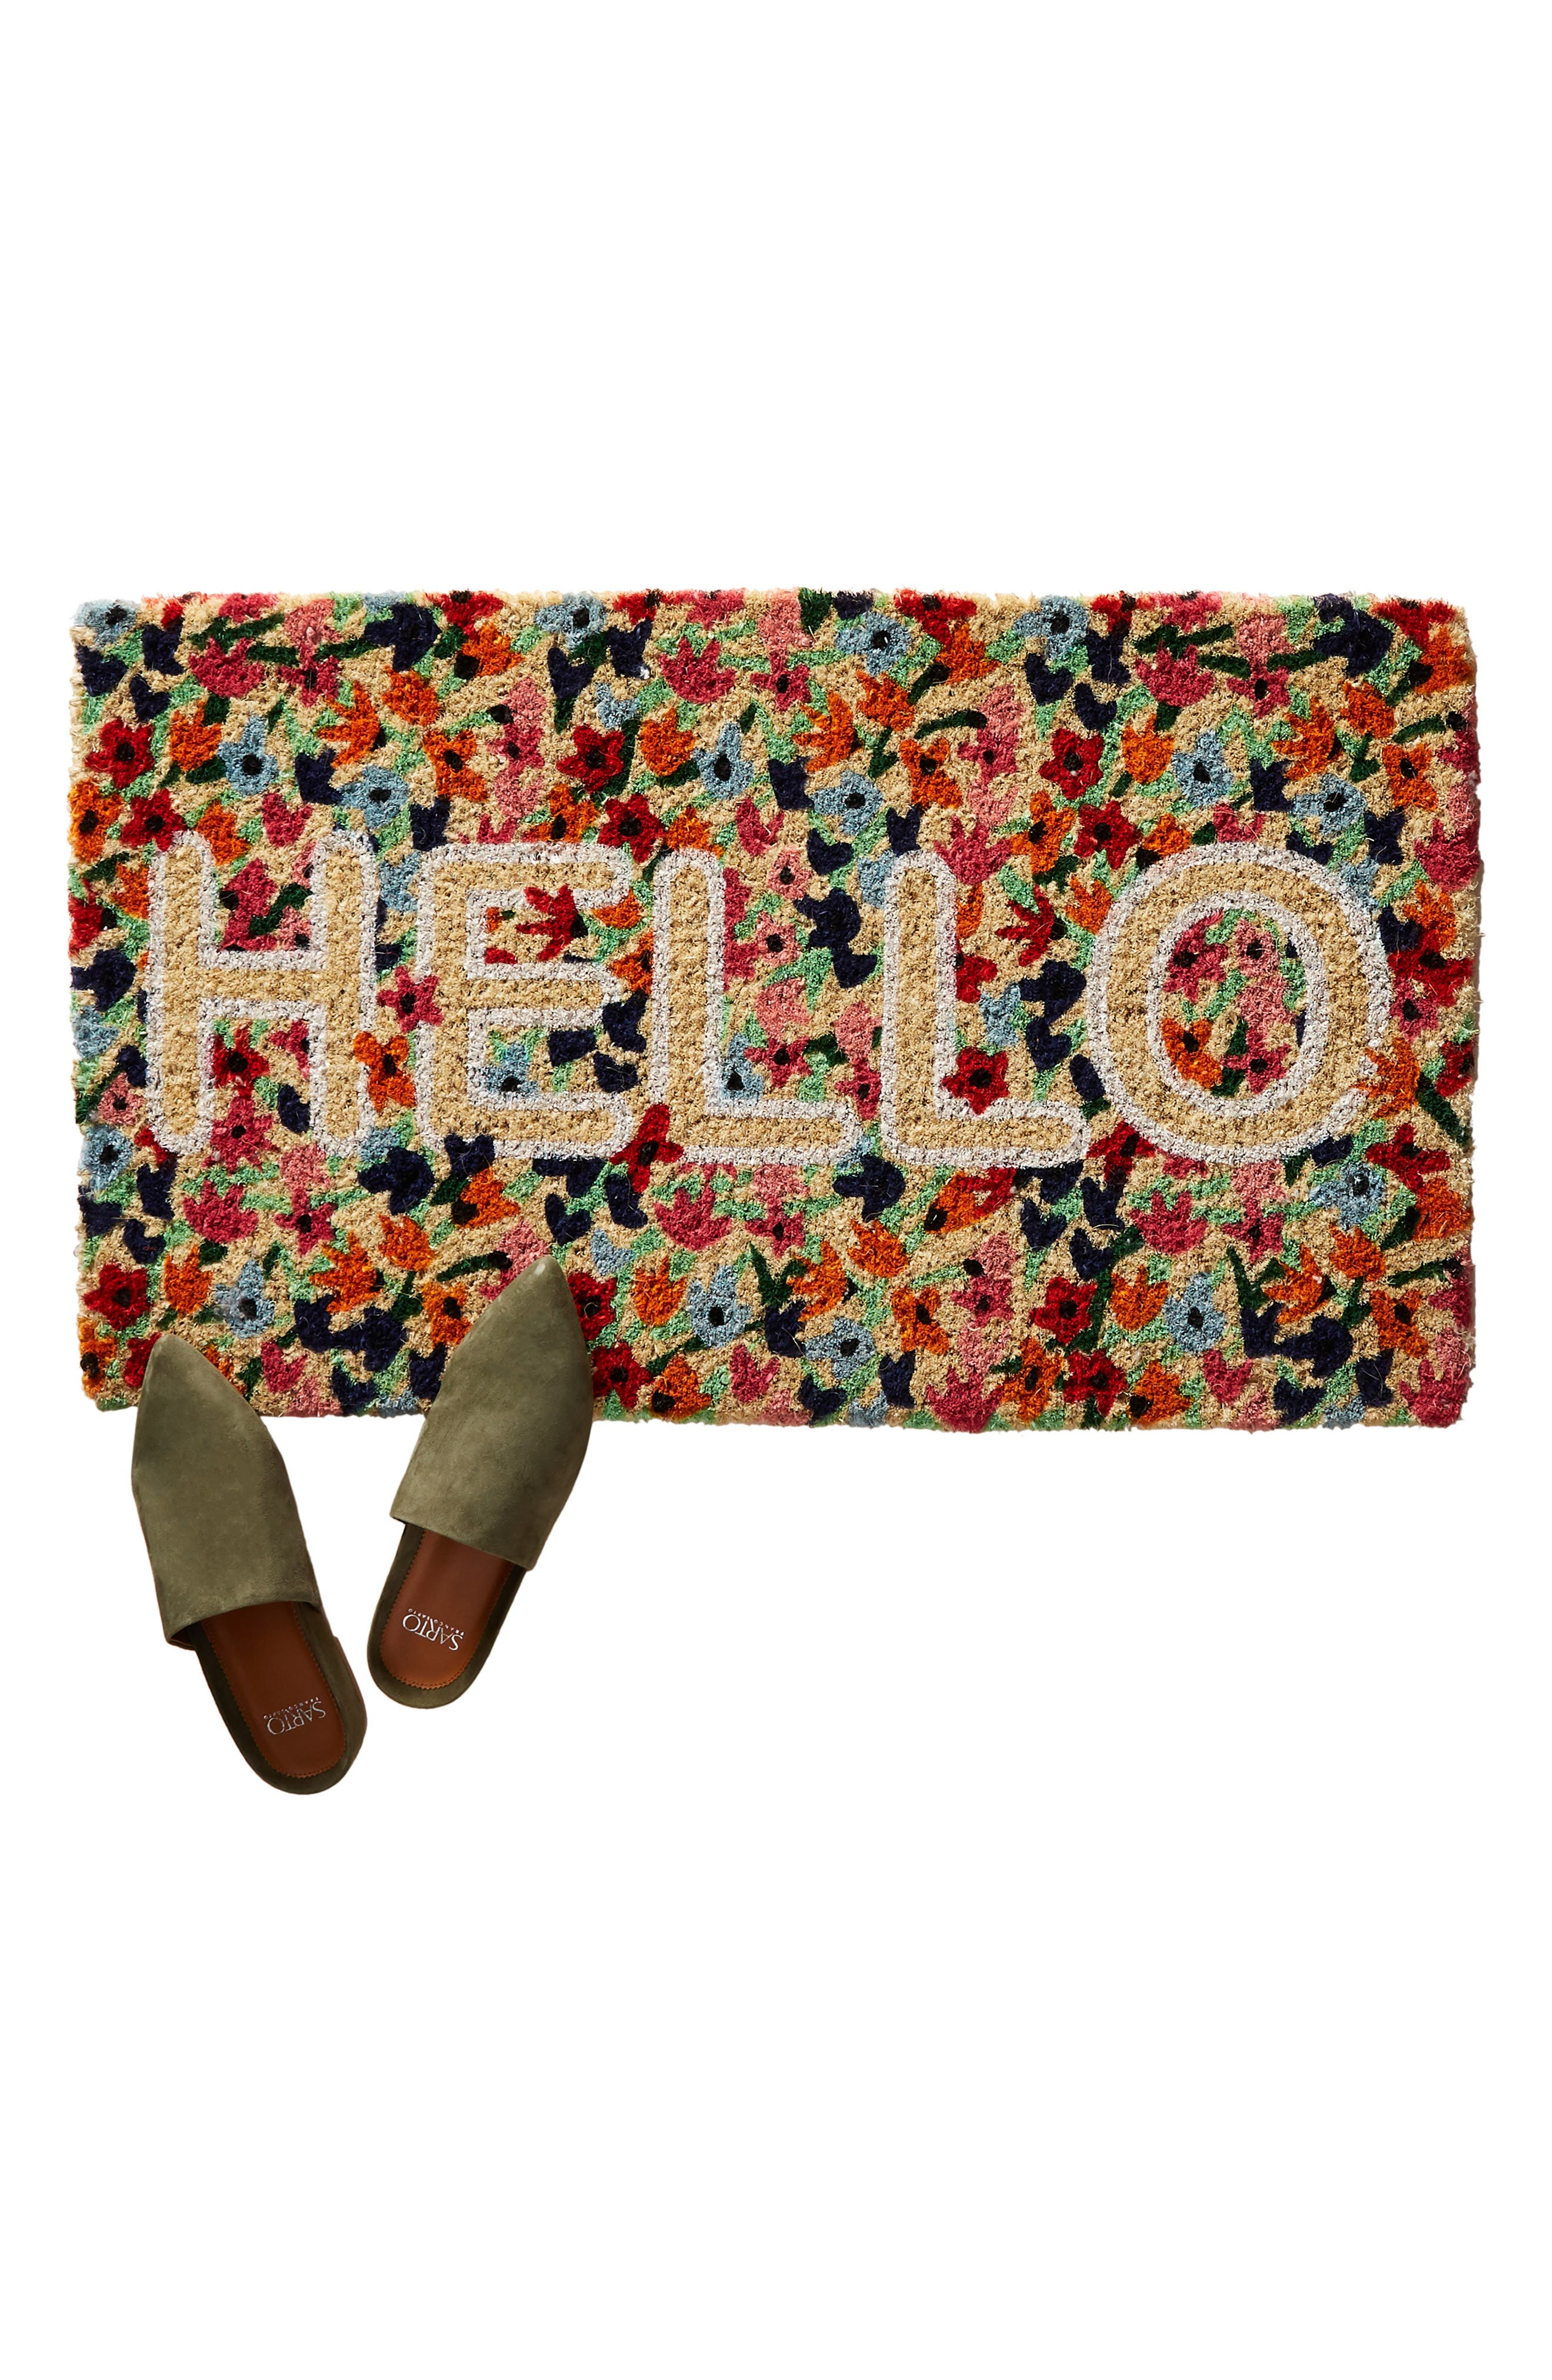 ANTHROPOLOGIE,                             Floral Hello Door Mat,                             Alternate thumbnail 3, color,                             RED COMBO